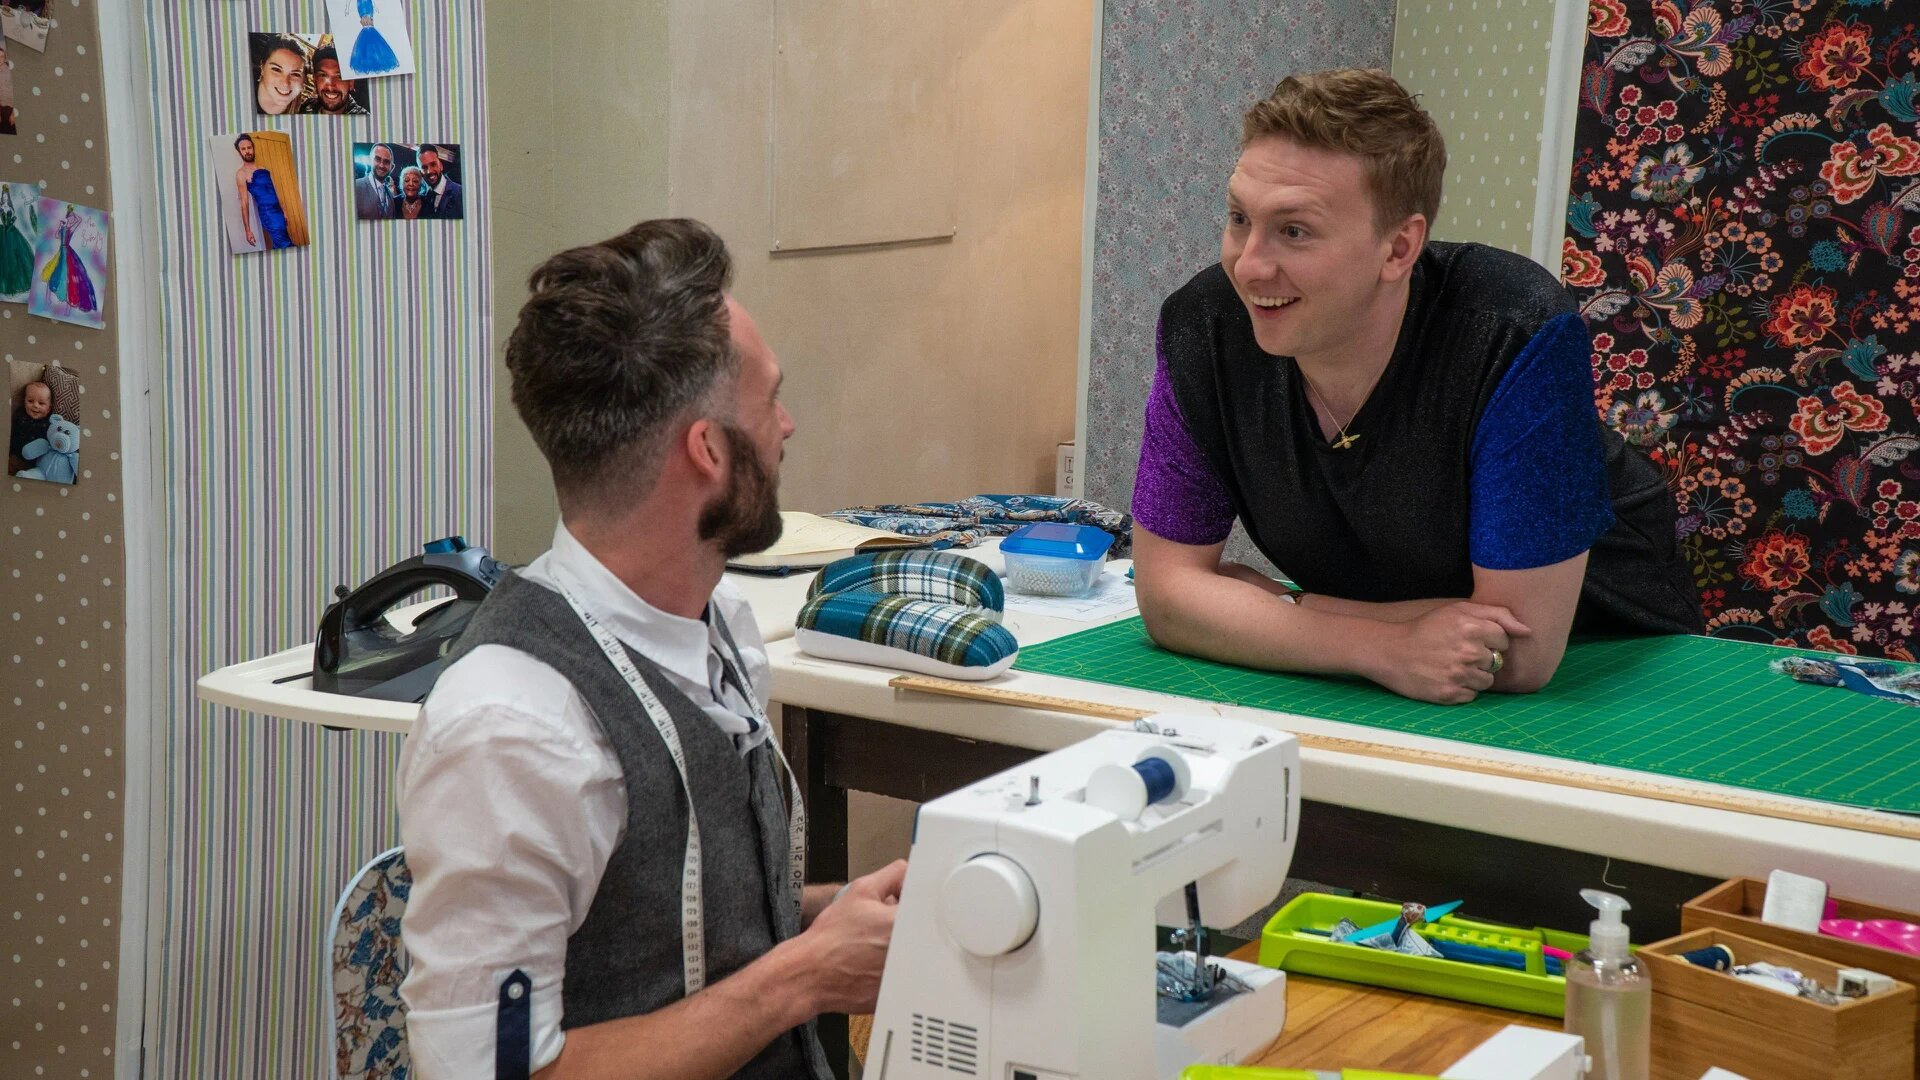 The Great British Sewing Bee — s07e01 — Episode 1